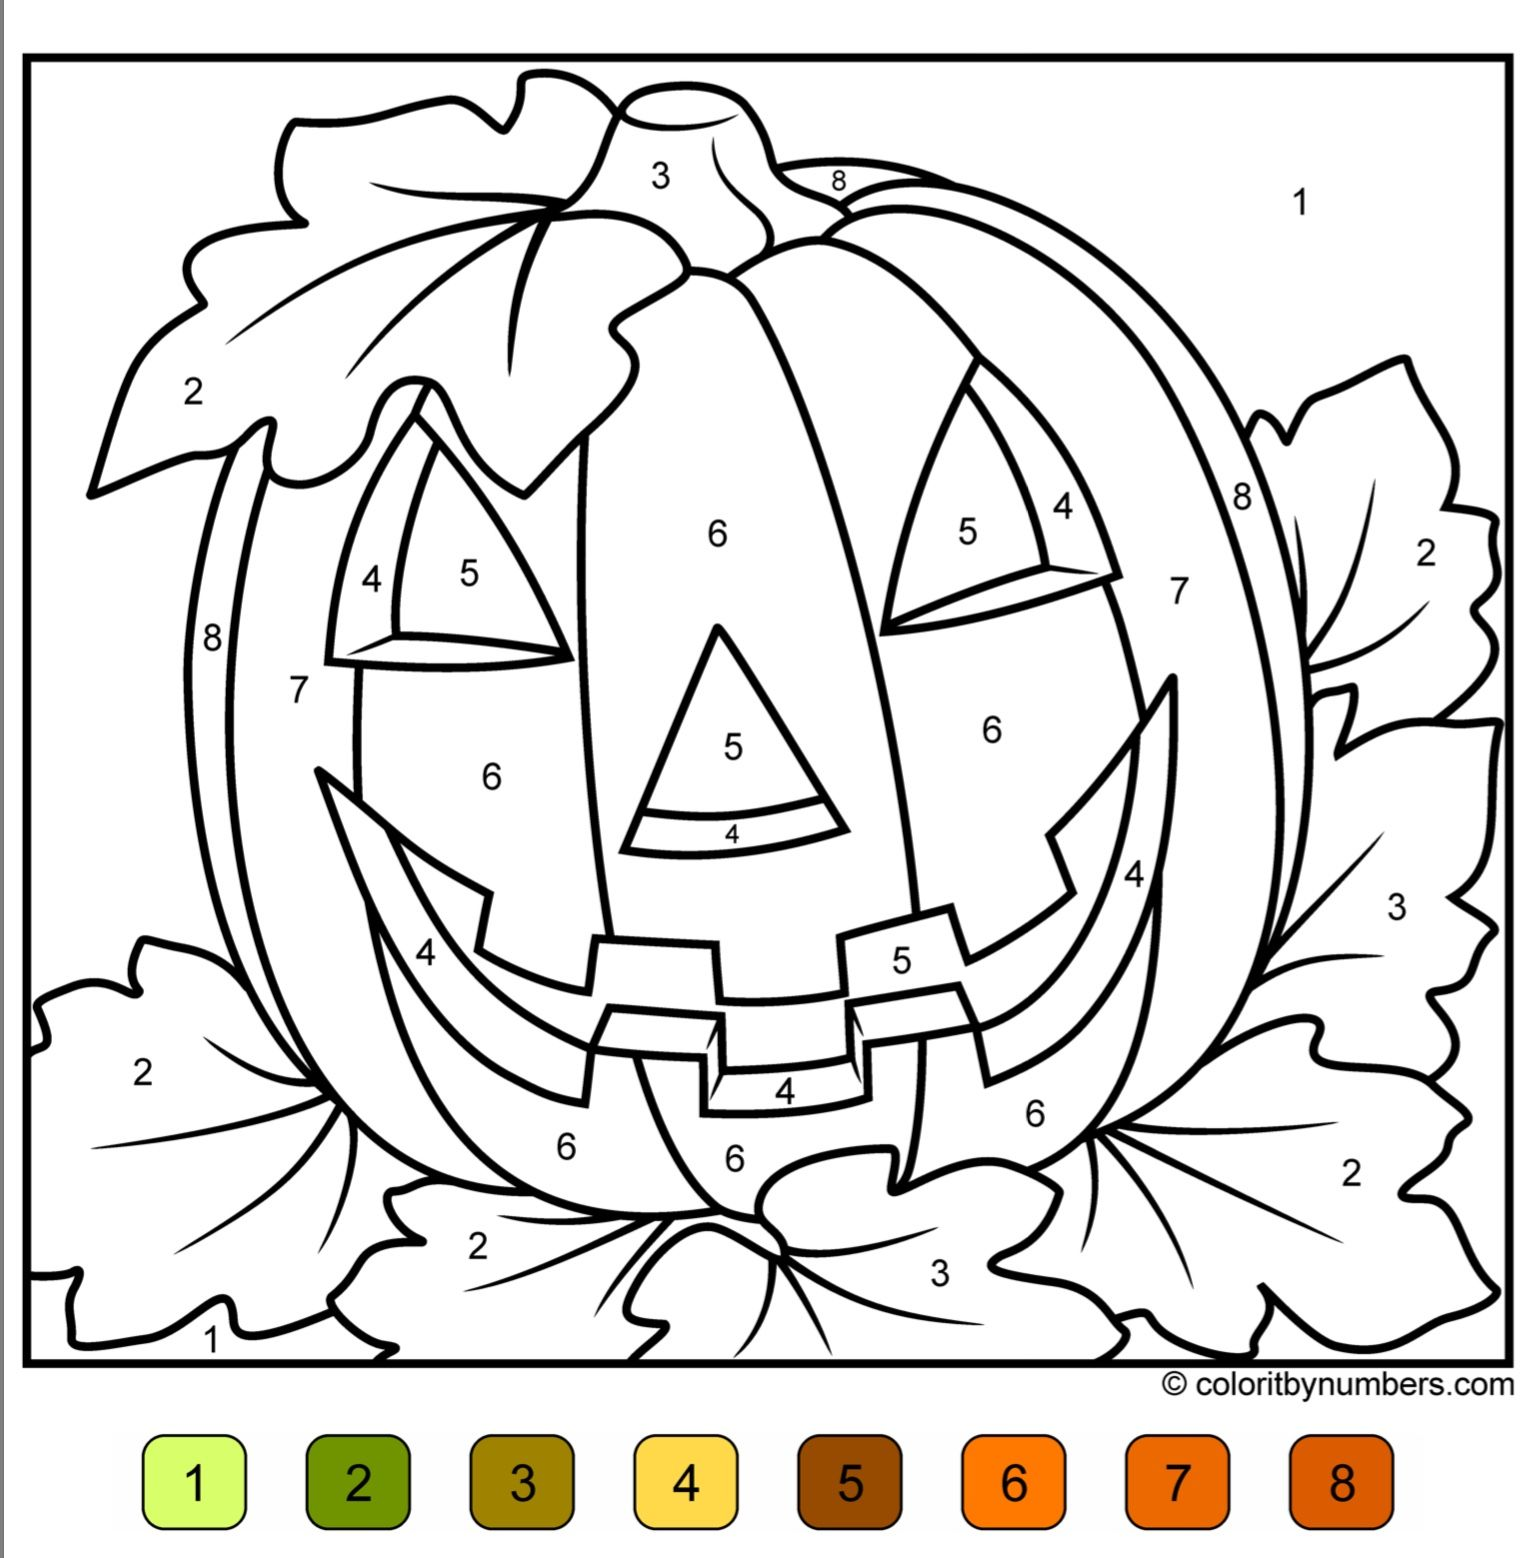 Pin By Gayla Marla On Halloween Cards Free Halloween Coloring Pages Halloween Coloring Pages Halloween Coloring